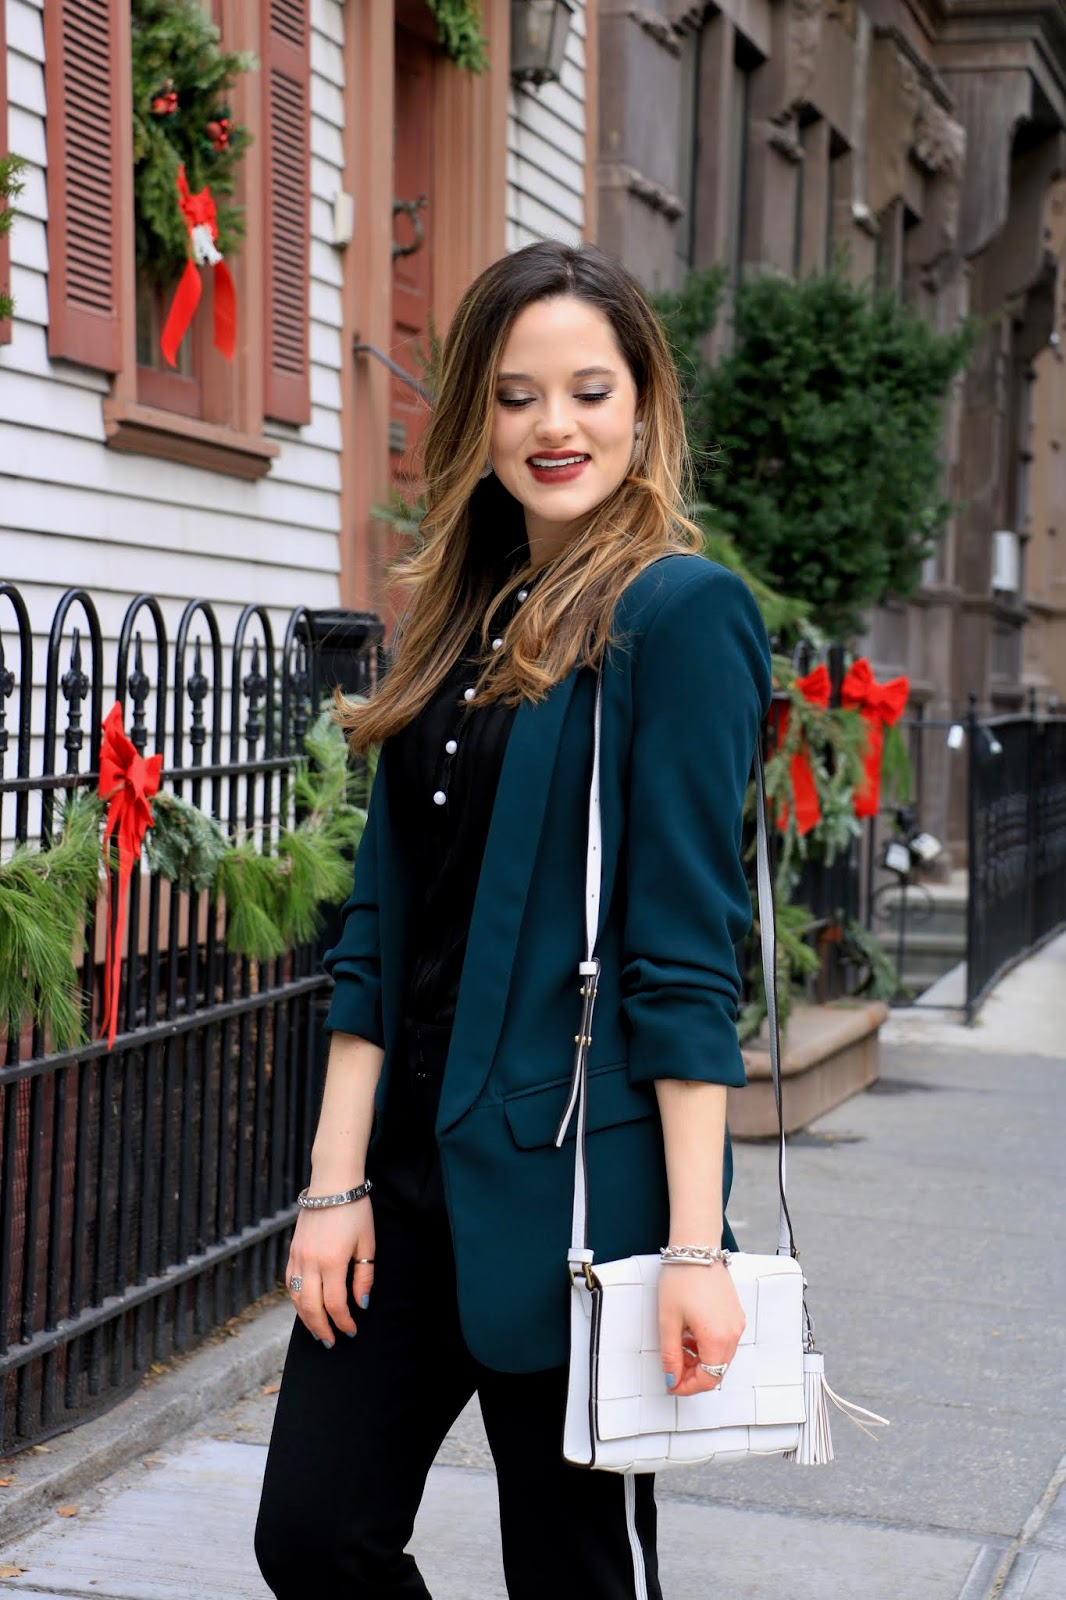 Nyc fashion blogger Kathleen Harper's holiday outfit ideas with pants